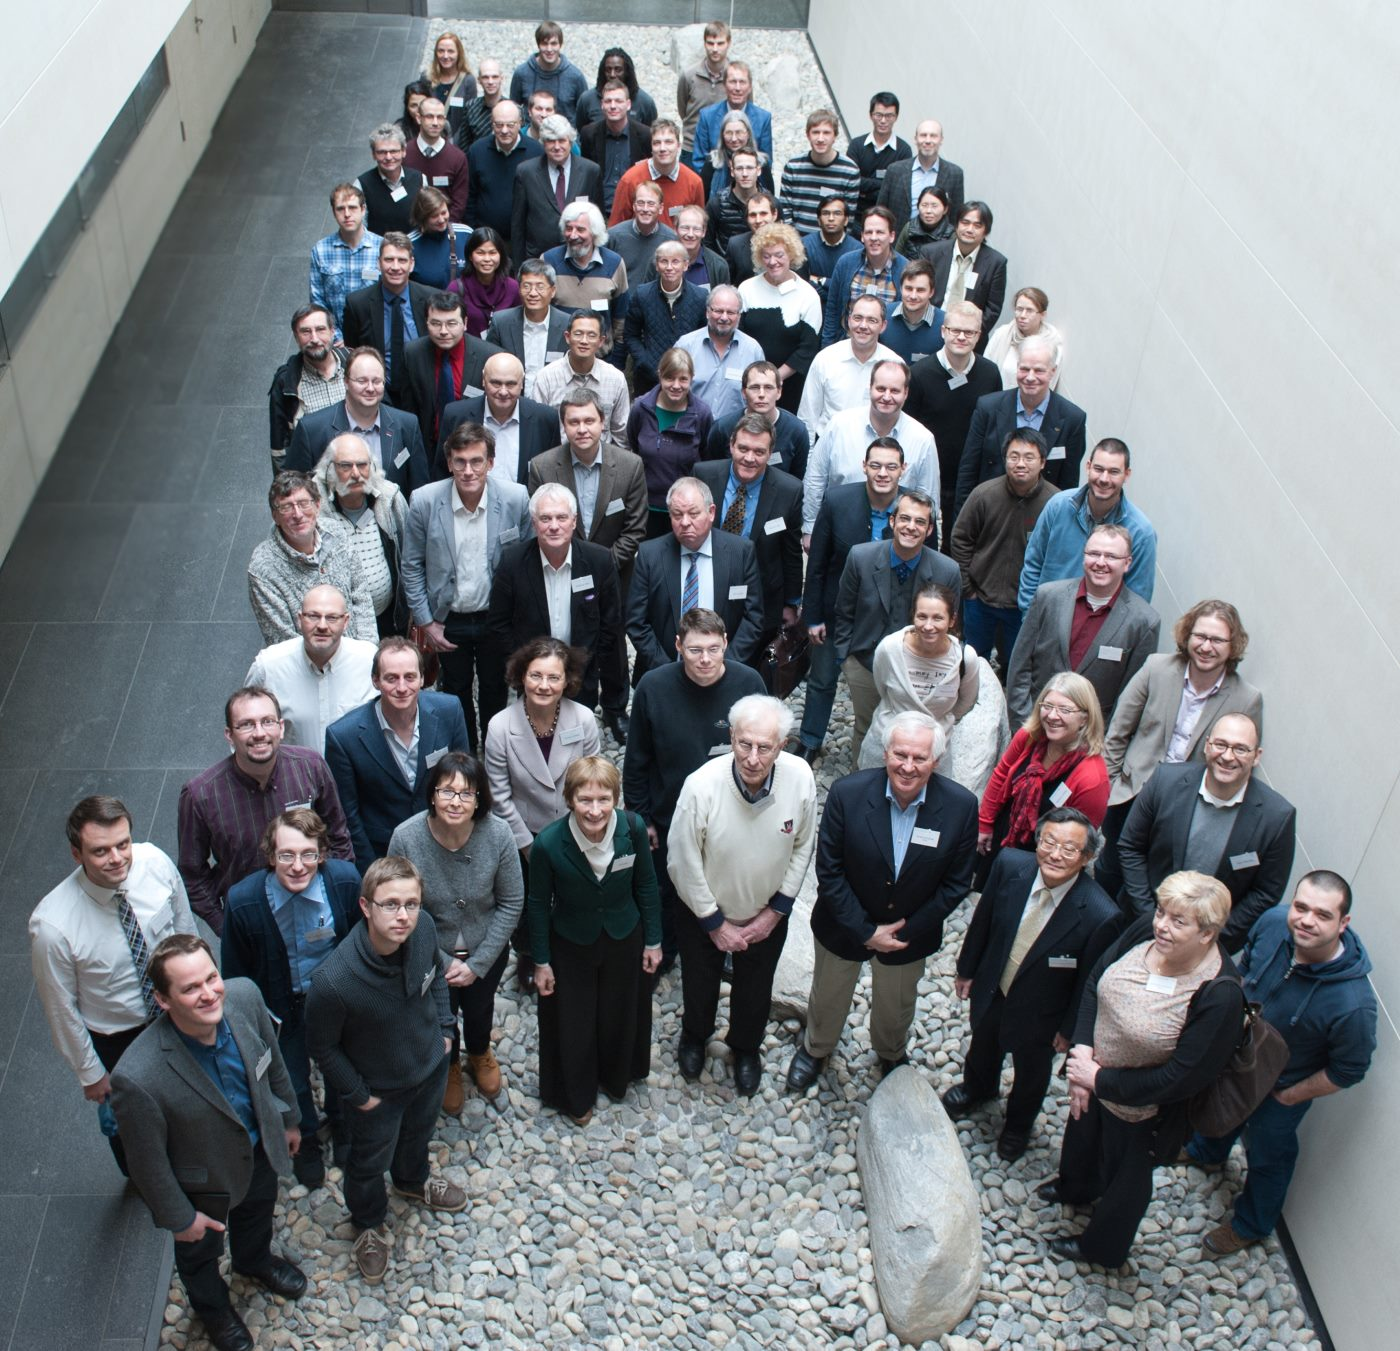 Group photo of participants of SALVE symposium 2013